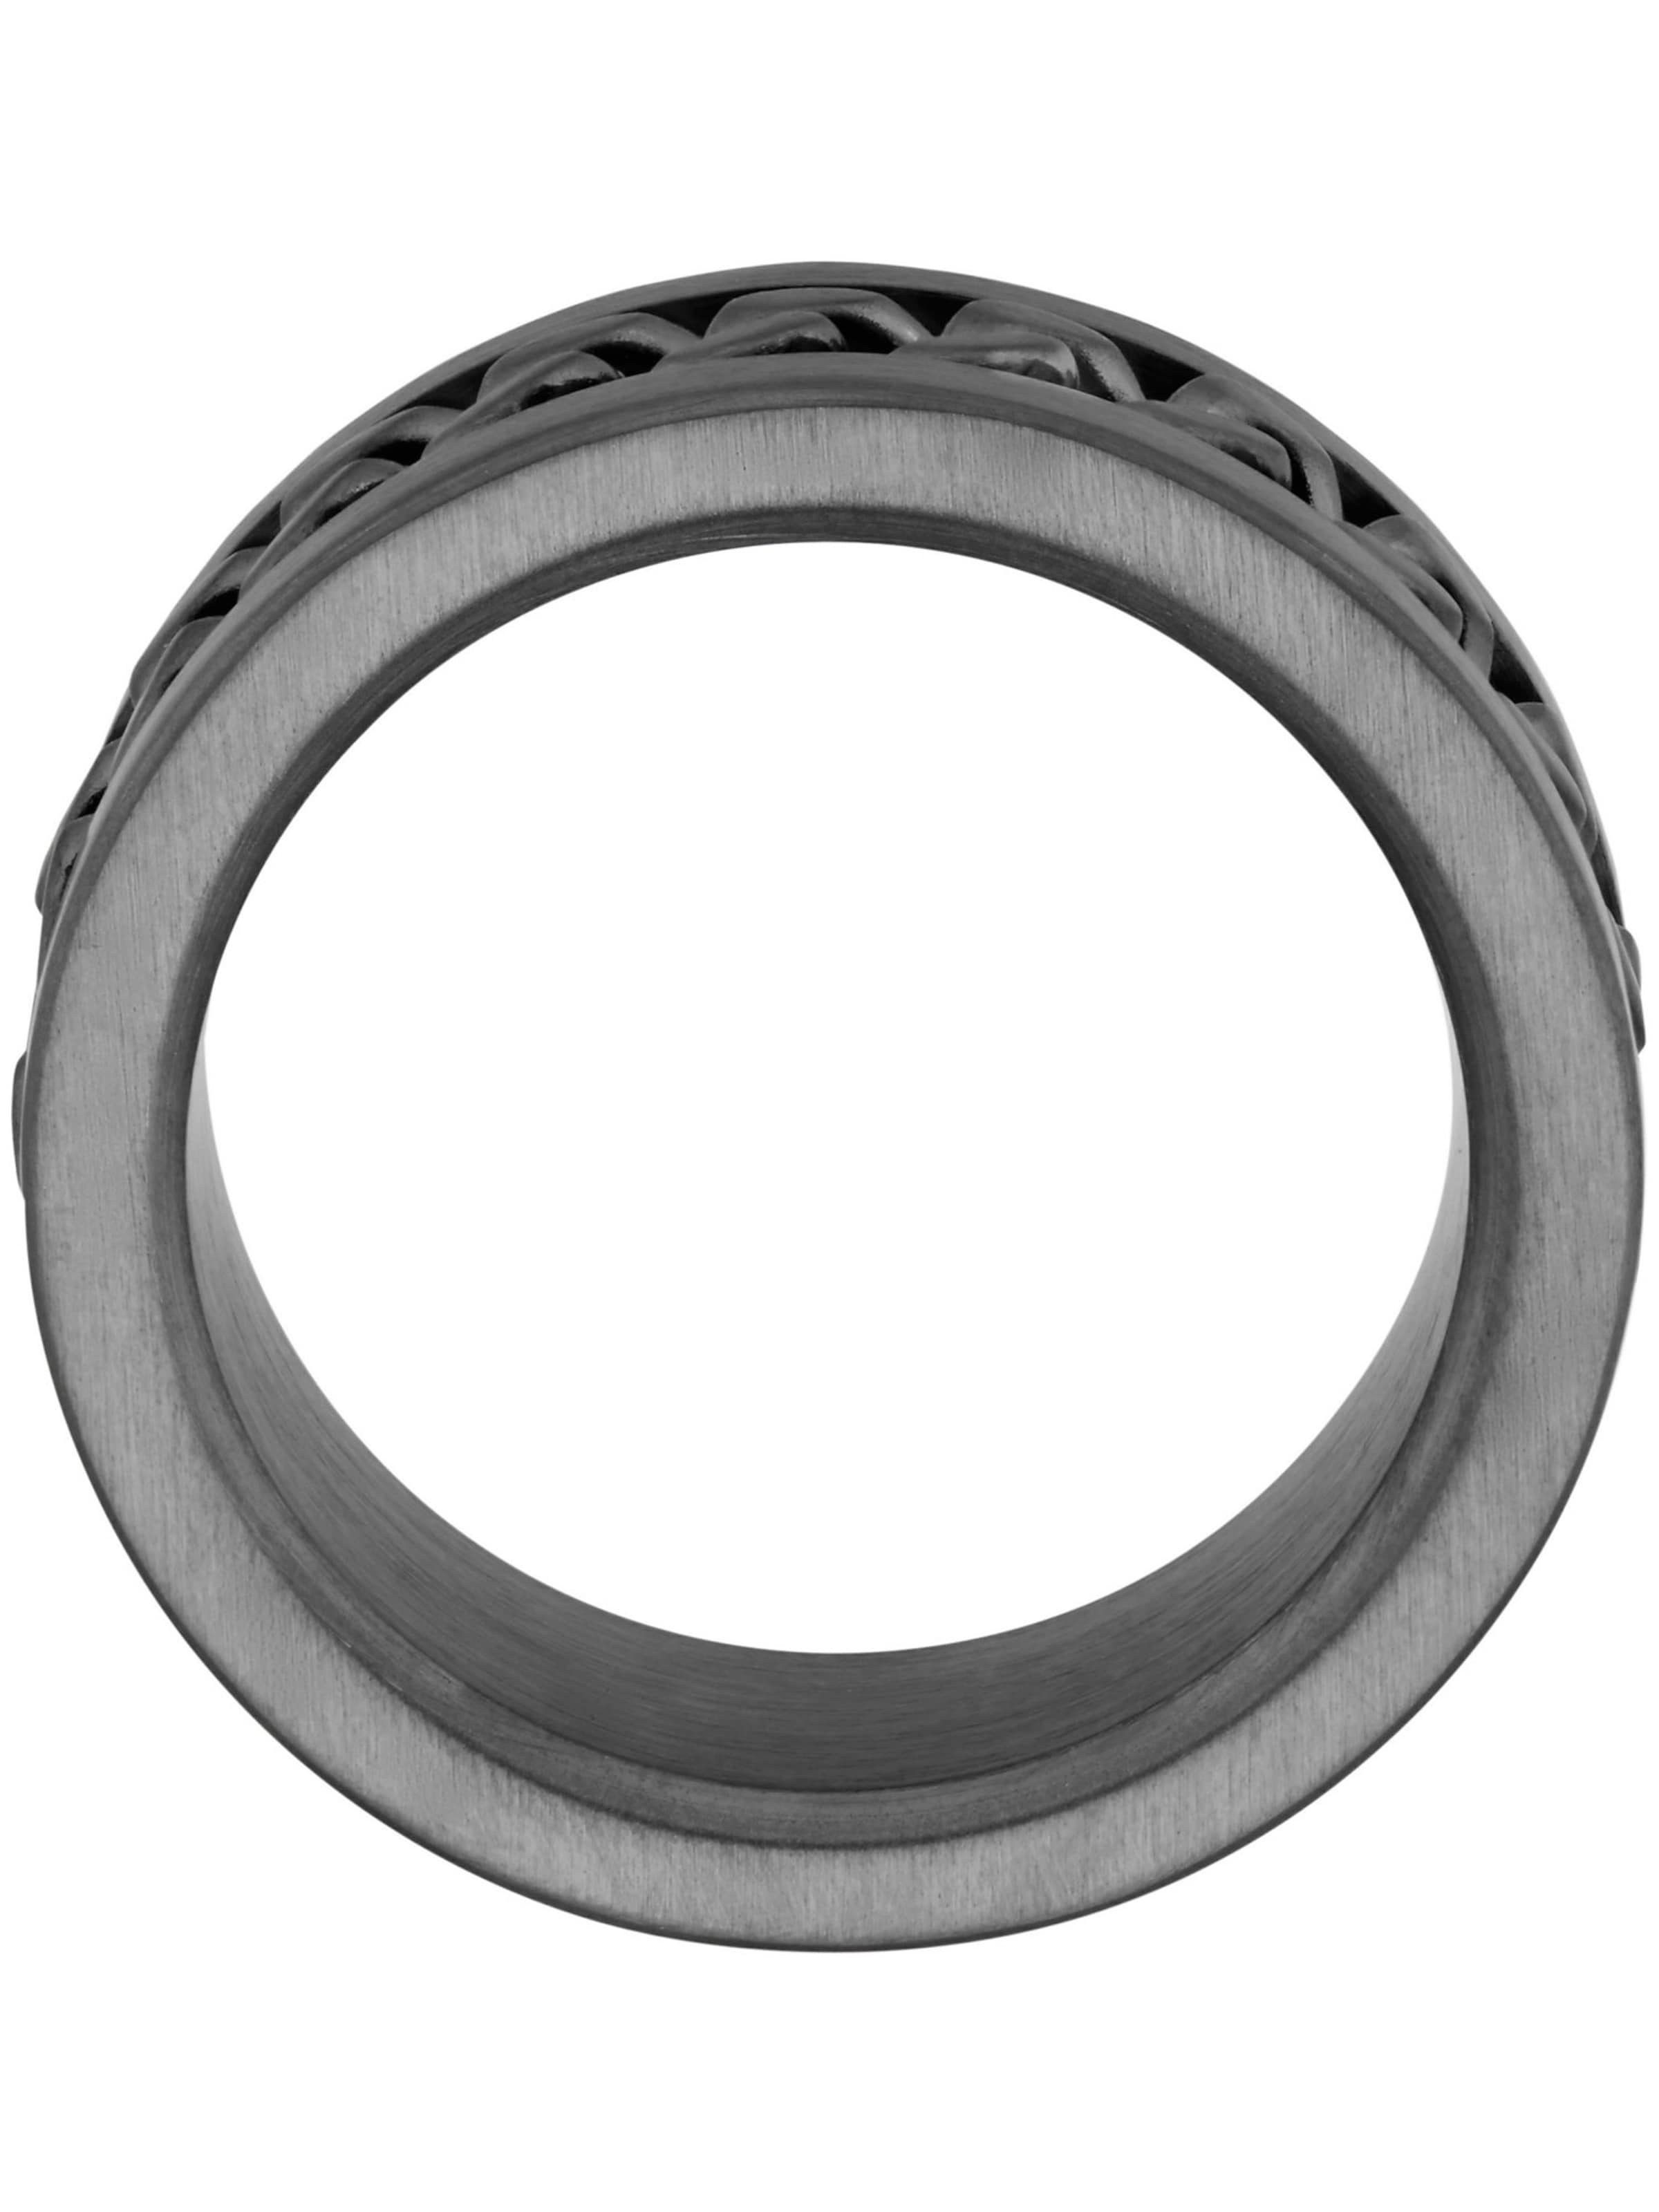 C C collection In In Ring Basaltgrau Basaltgrau Ring C collection rCeodWBx